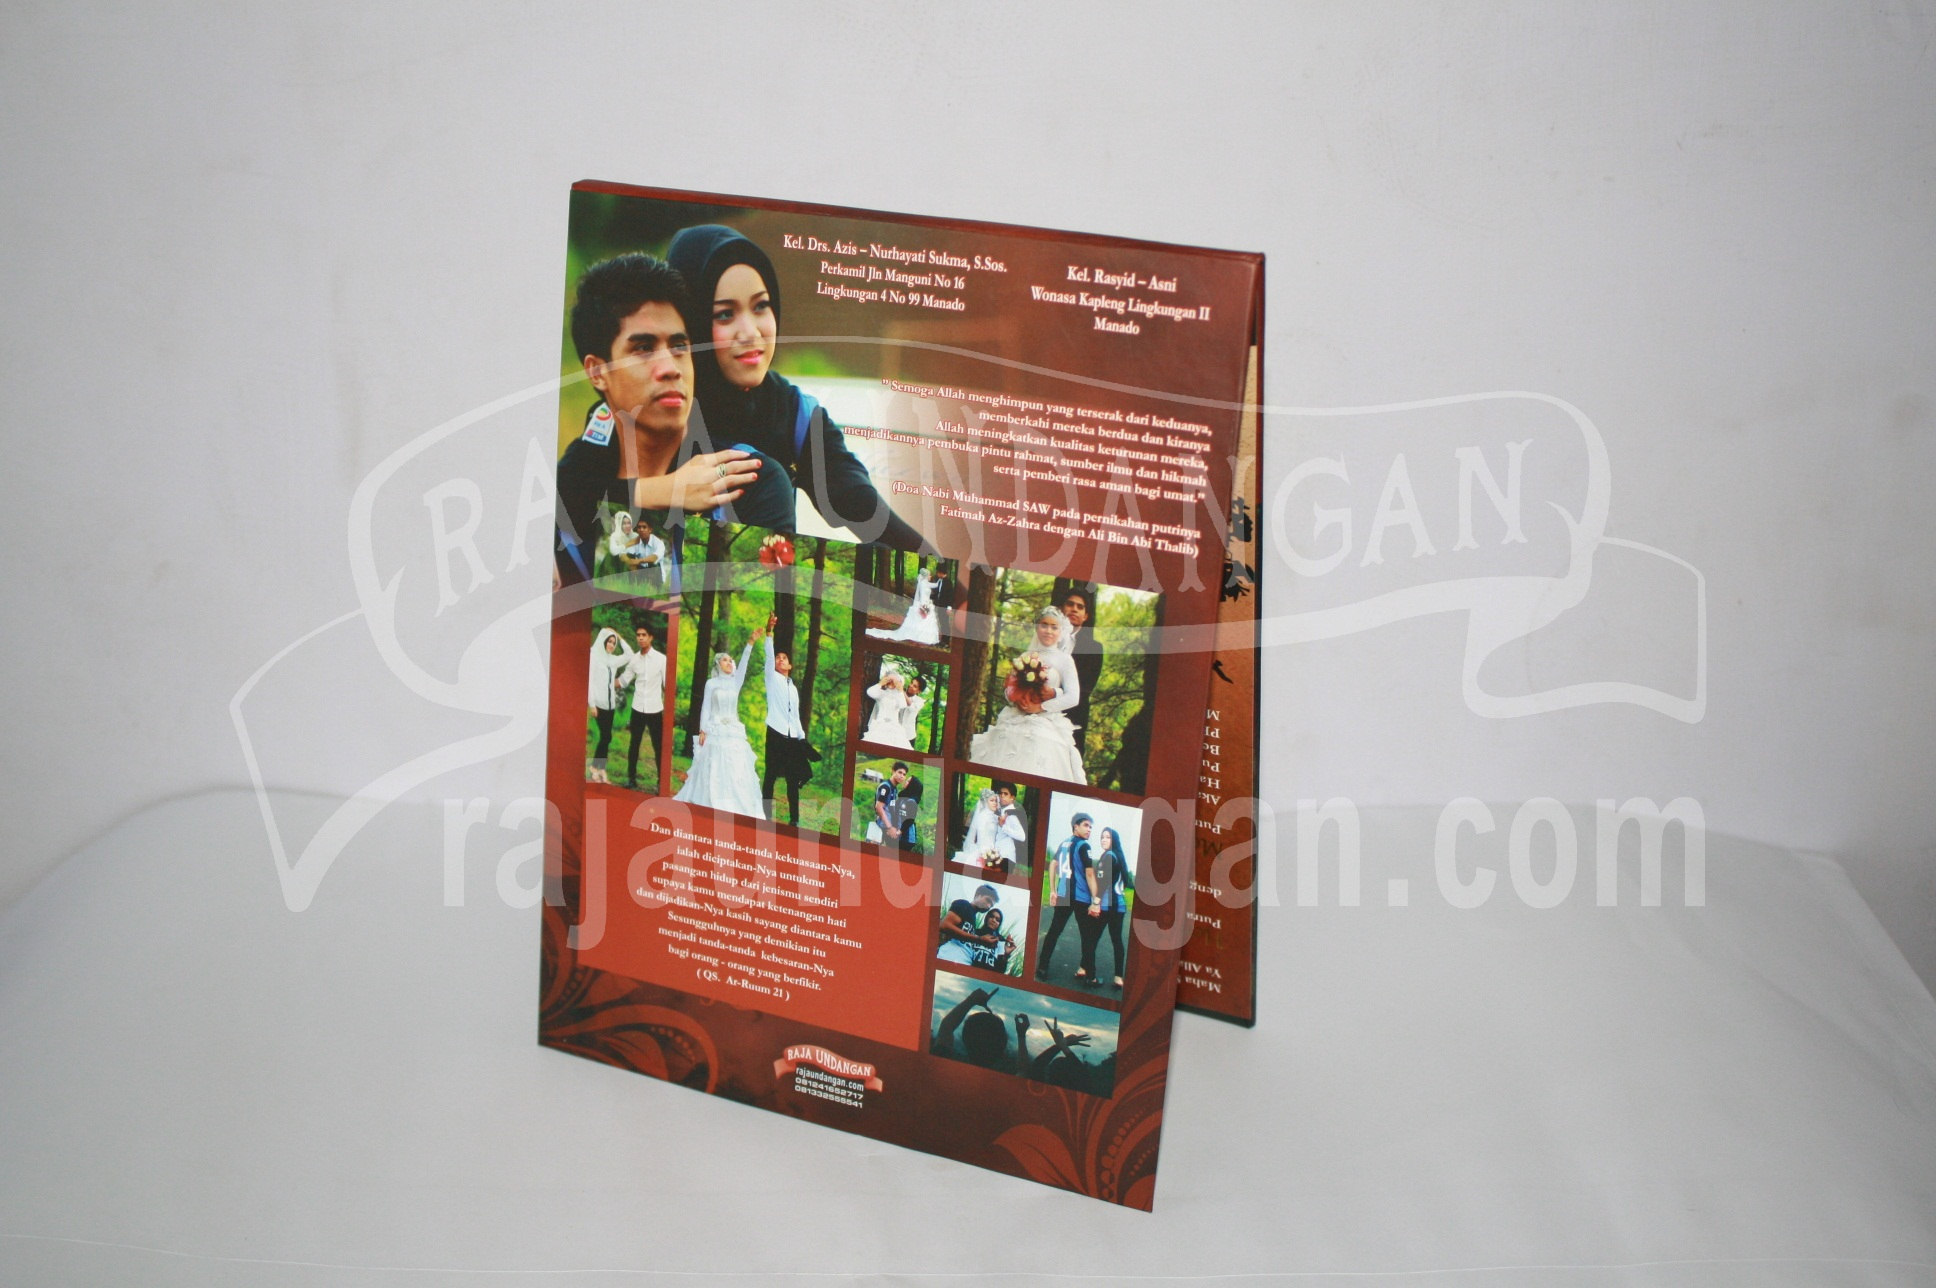 Undangan Pernikahan Hardcover Pop Up Heri dan Mona EDC 43 14 - Tutorial Mengerjakan Wedding Invitations Simple dan Elegan